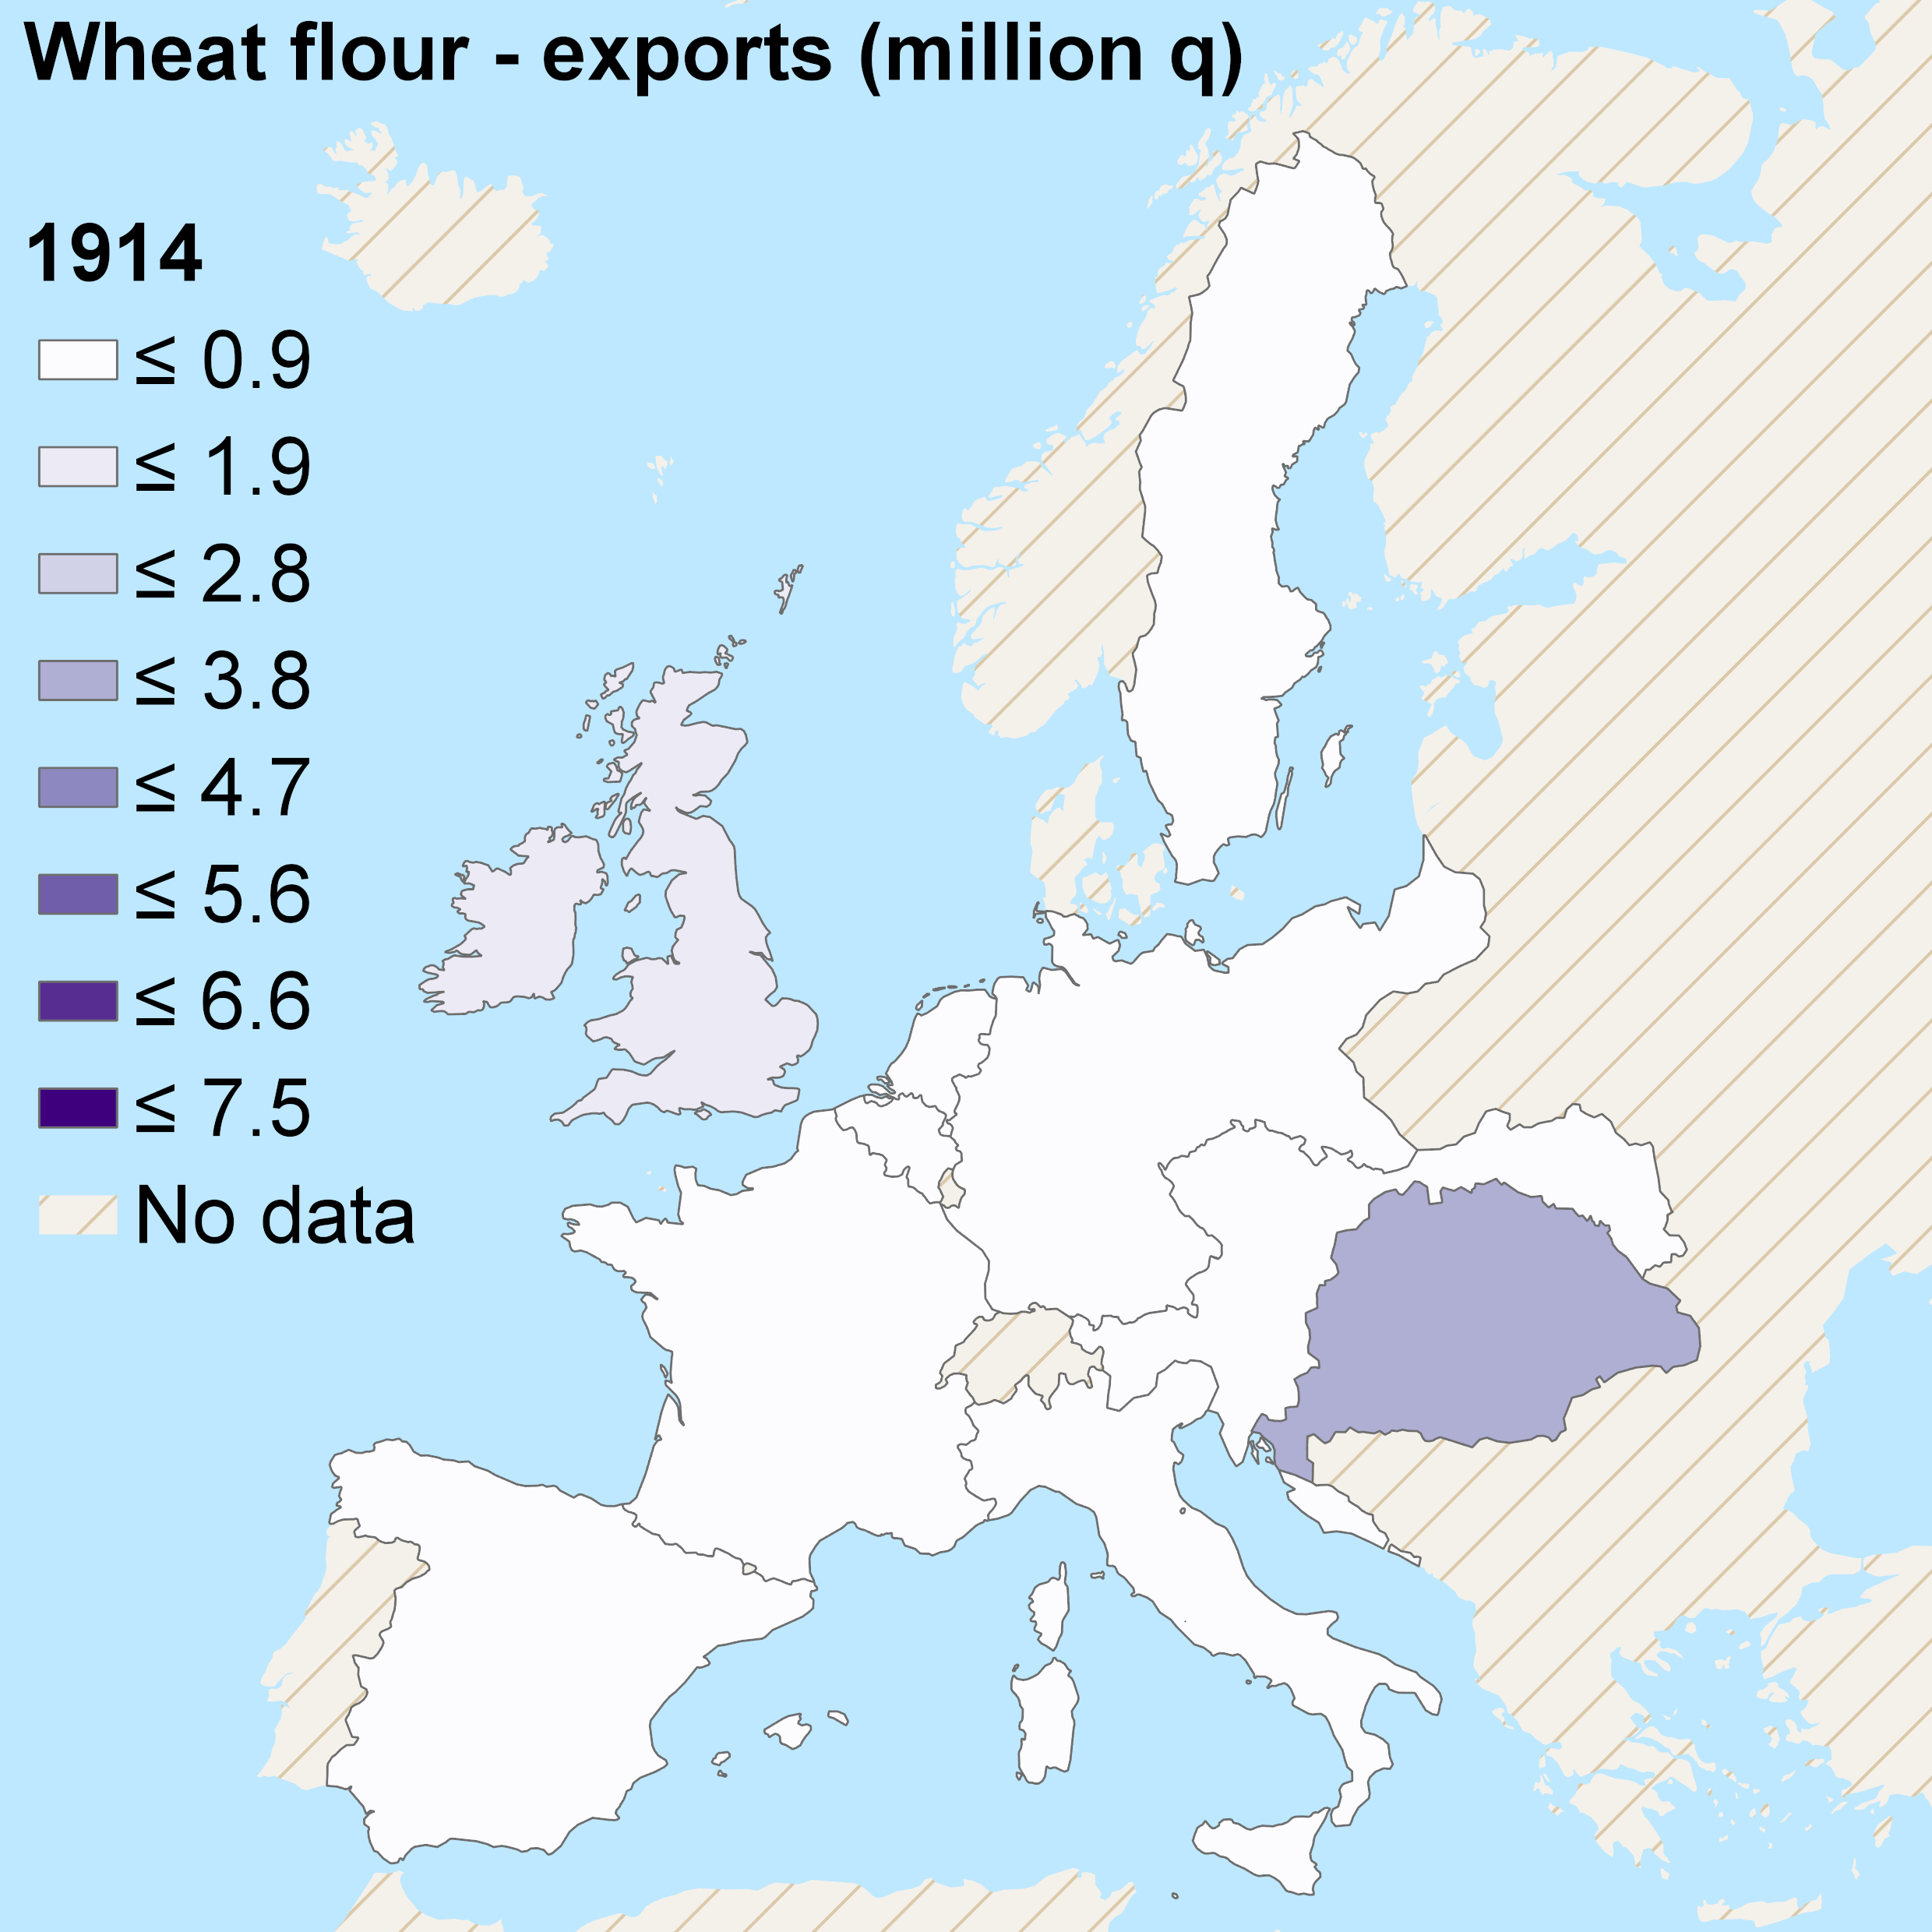 wheat-flour-exports-1914-v2